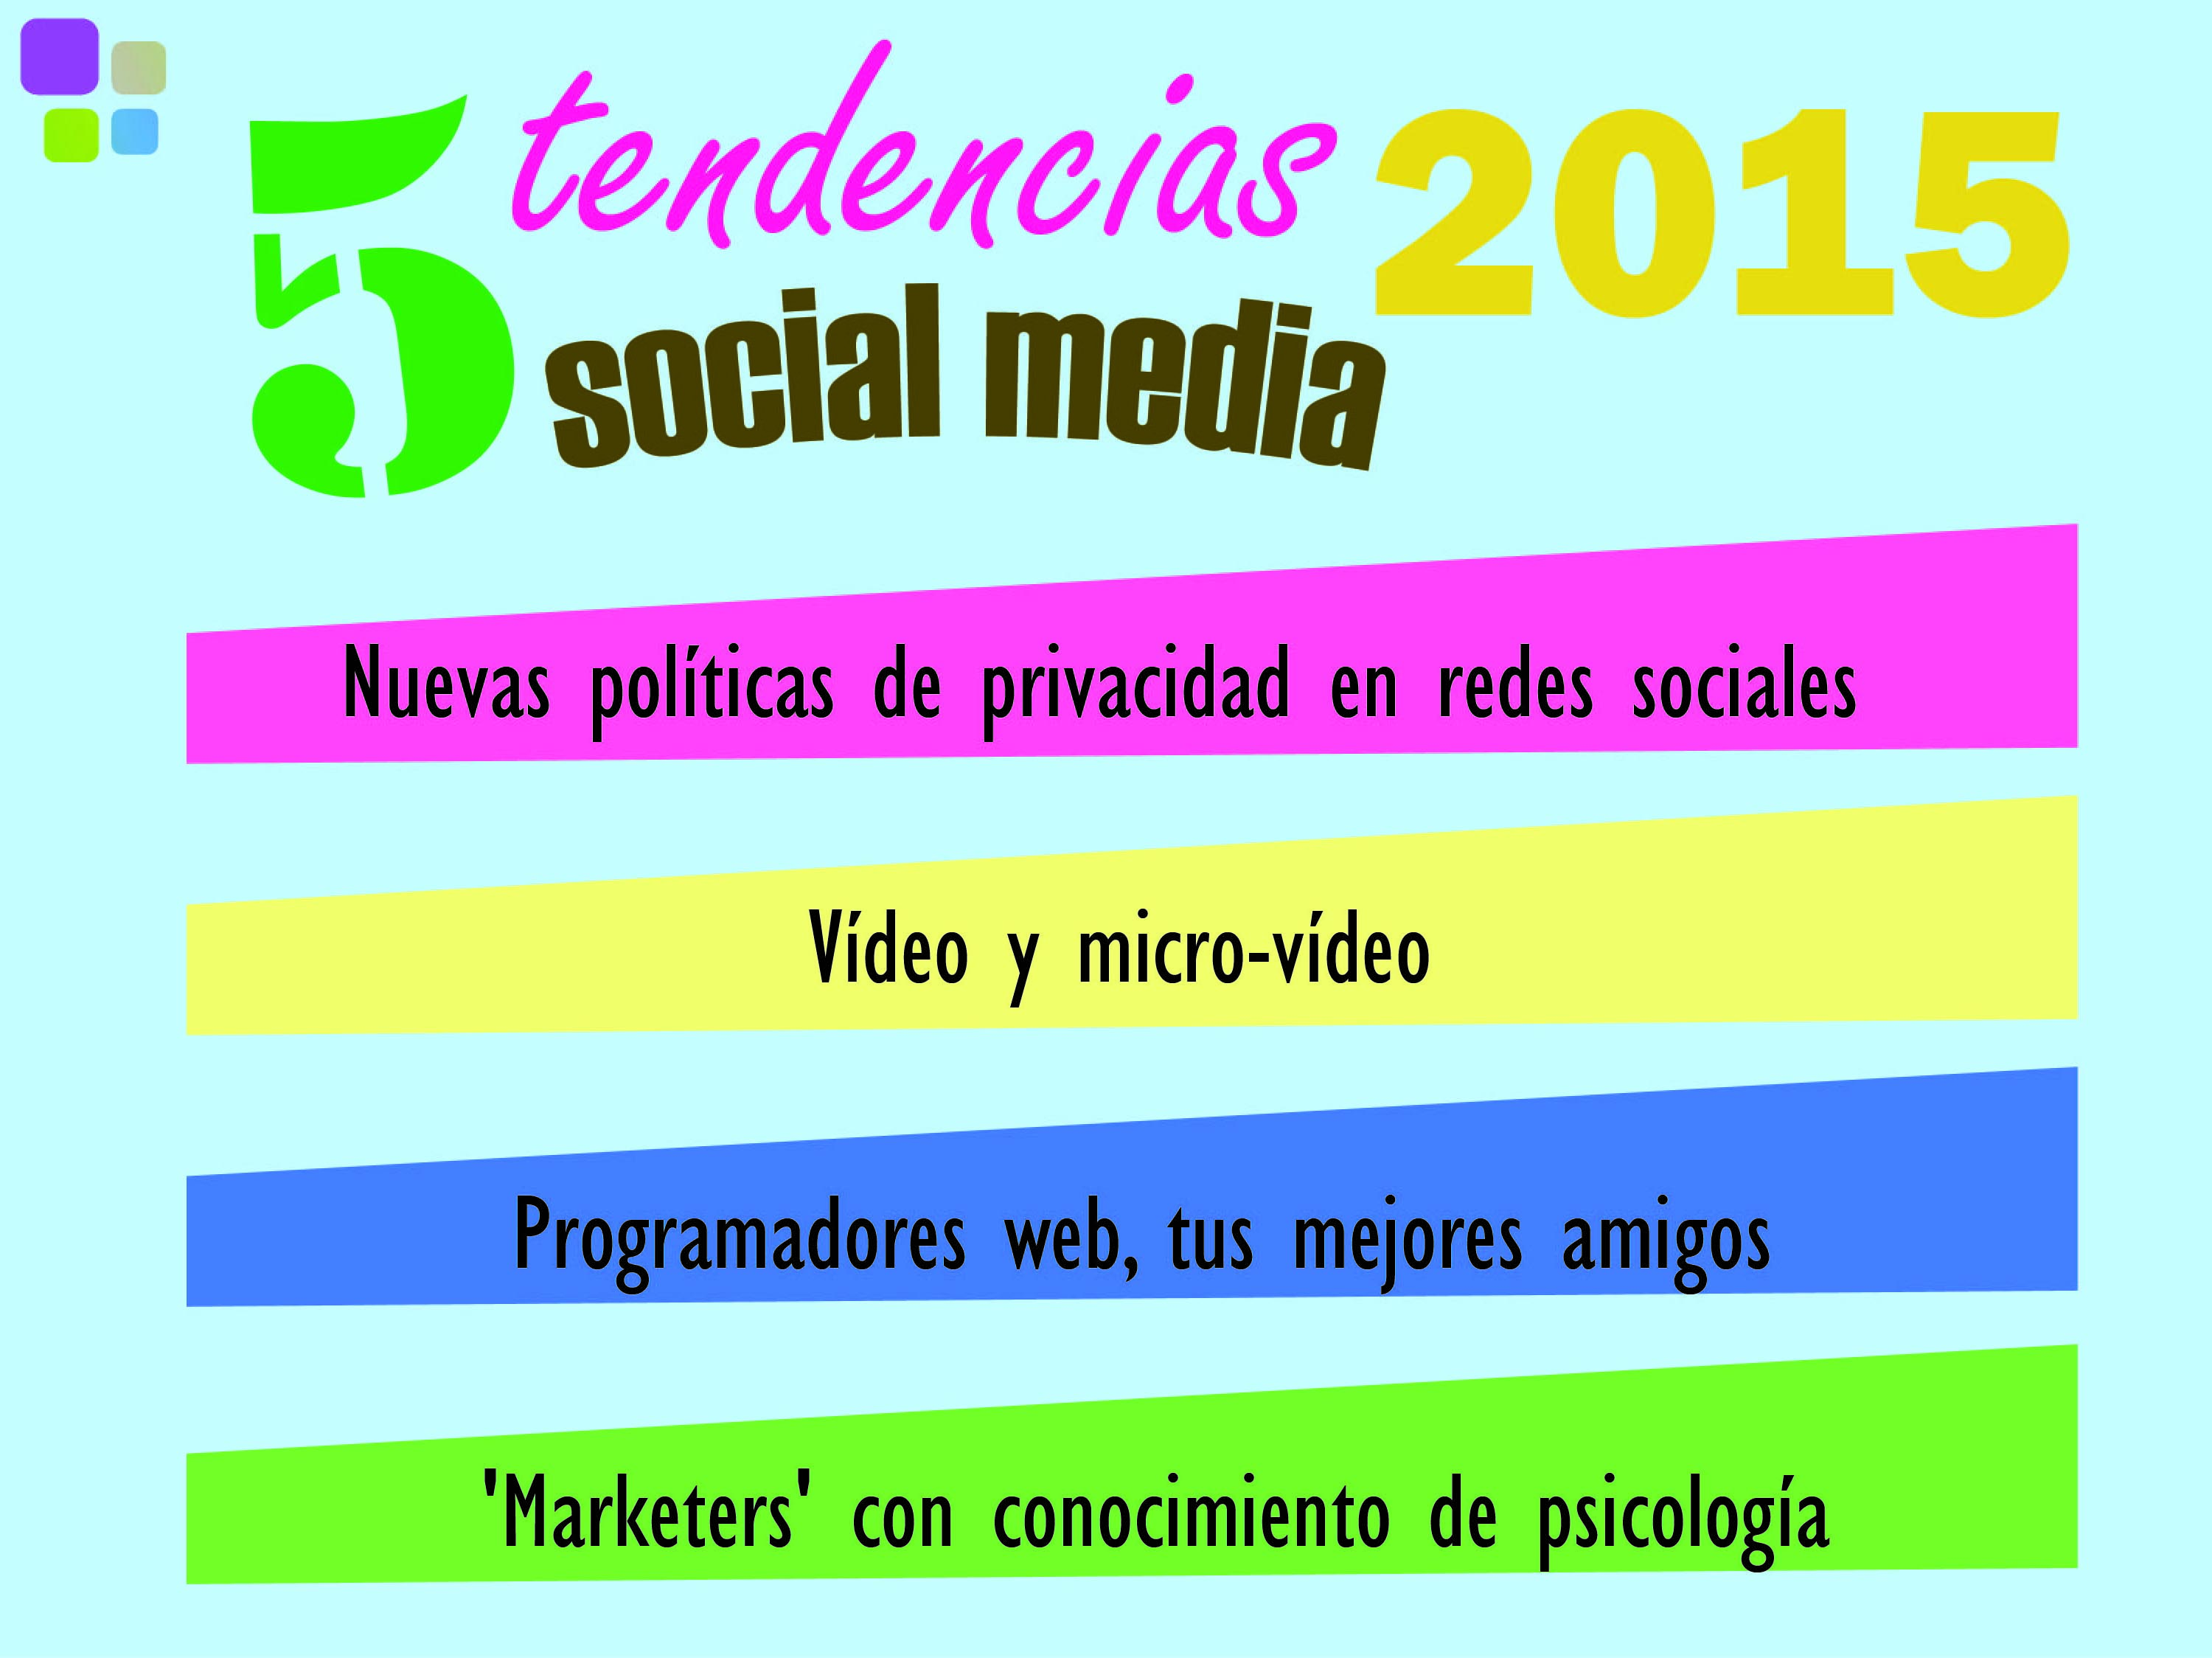 Últimas tendencias en Social media para 2015